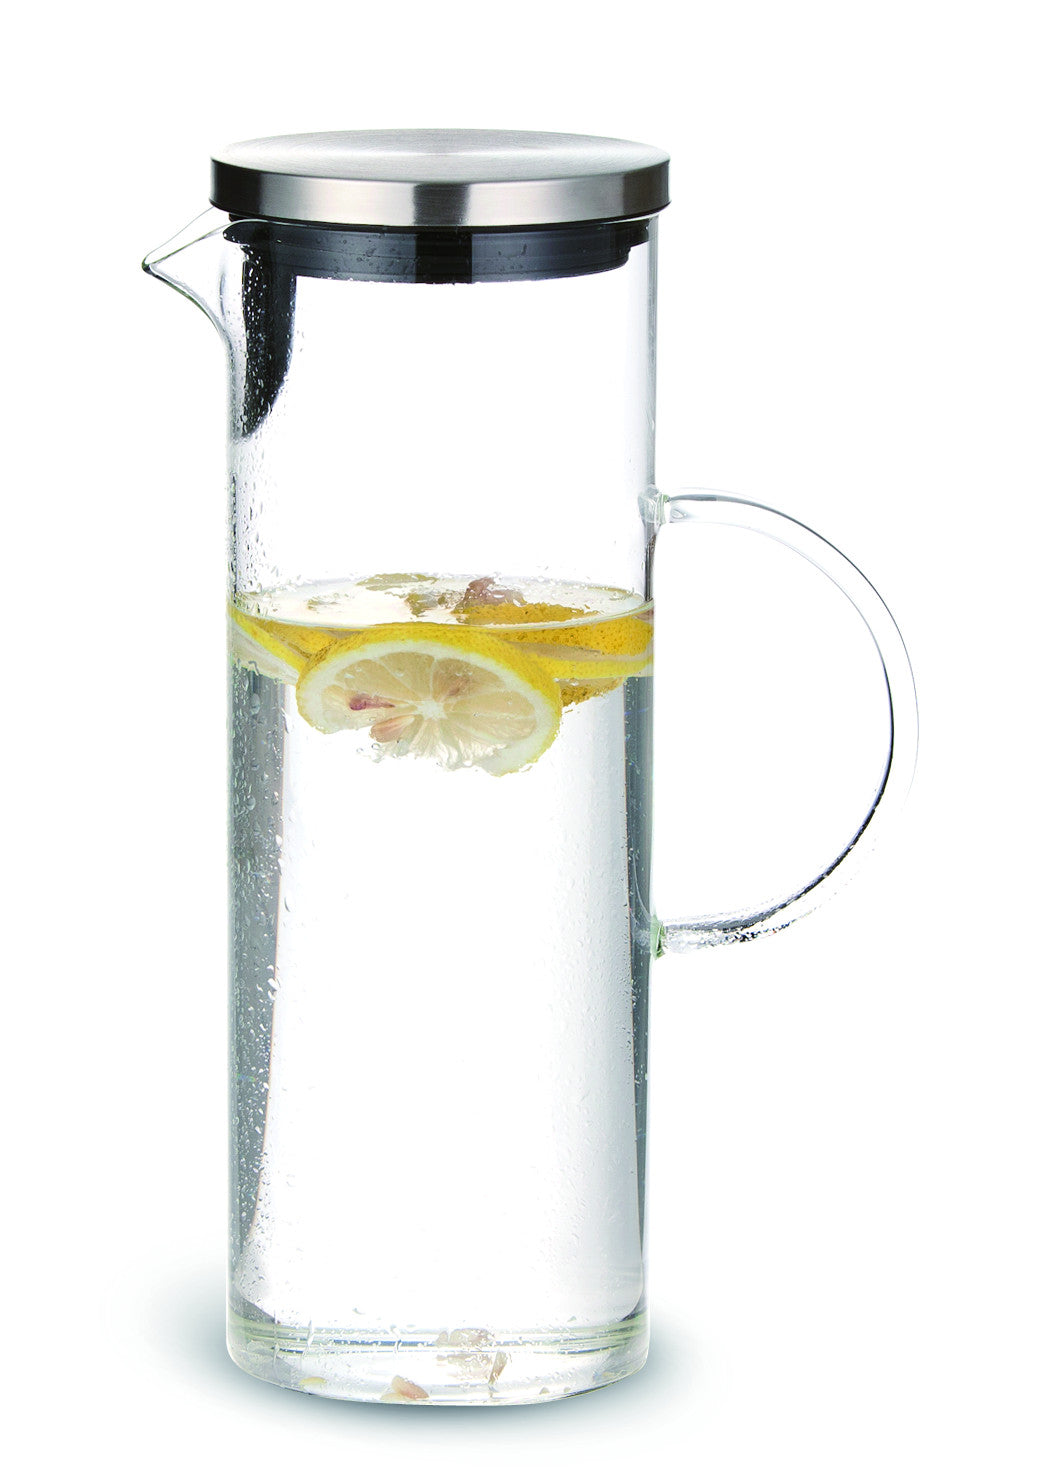 Chefoh Glass Pitcher with Lid - Unique Pattern Cold Water Jug - 1300 ML perfect for Homemade Iced Tea and Juice